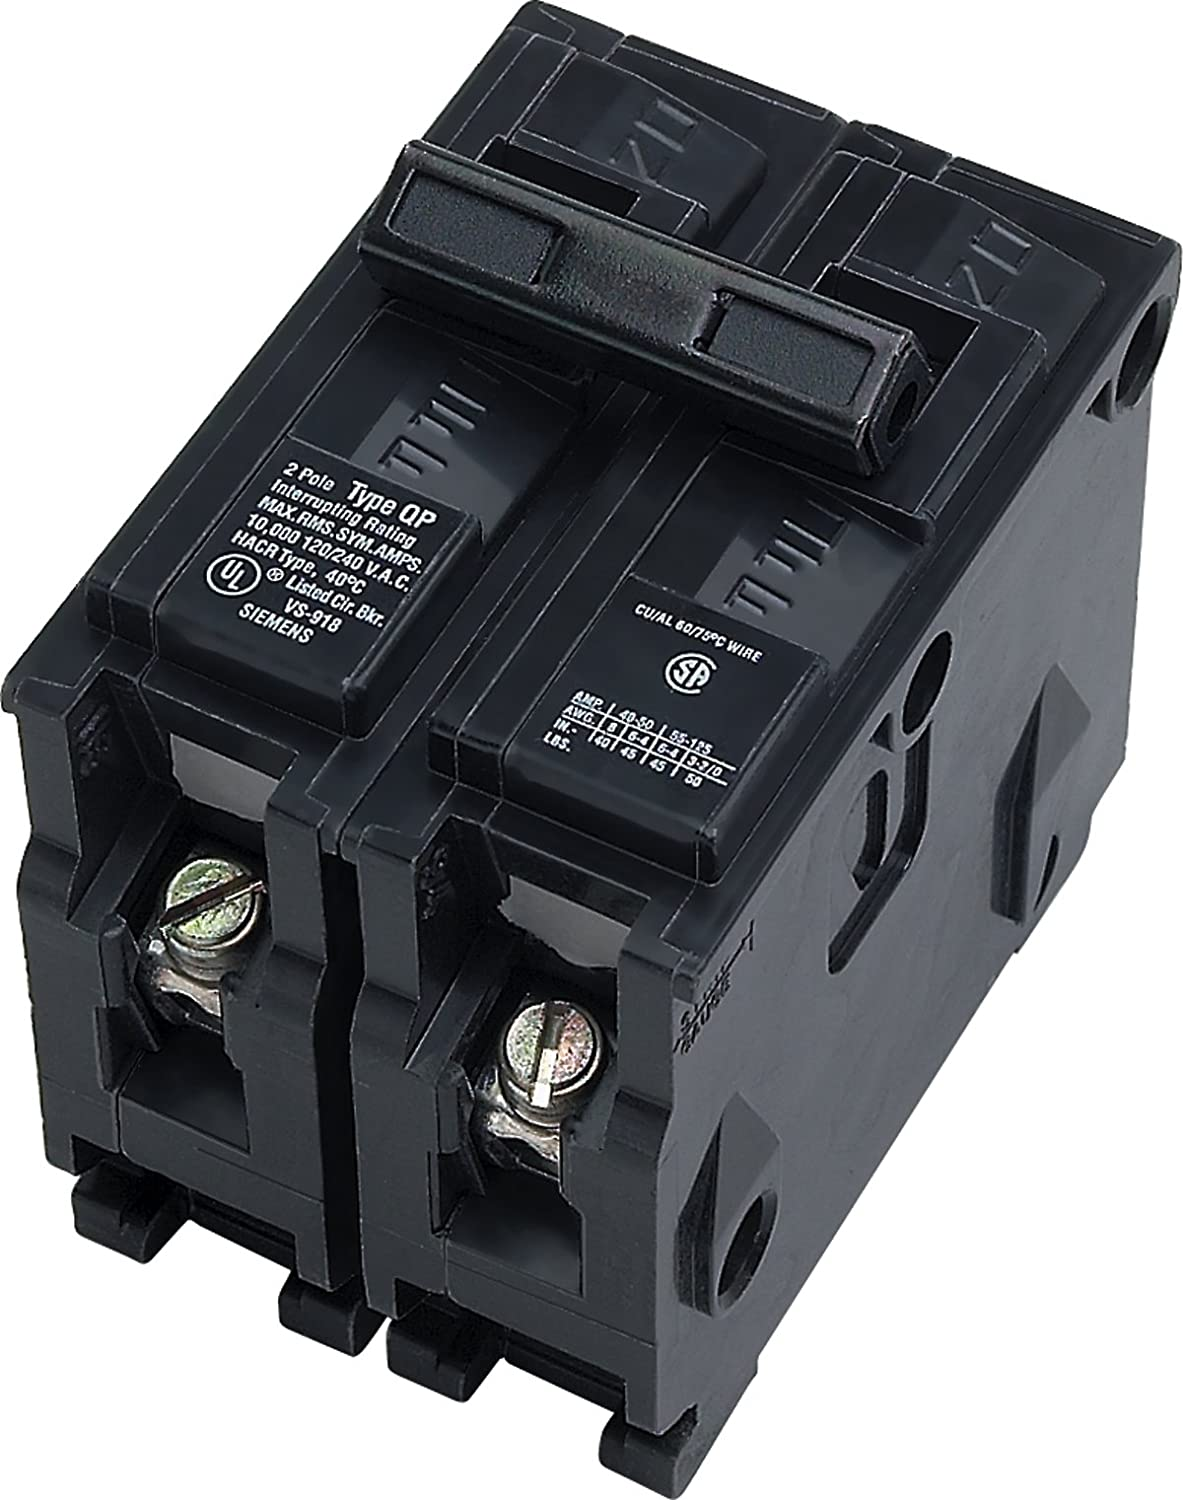 Q225 25-Amp Double Pole Type QP Circuit Breaker